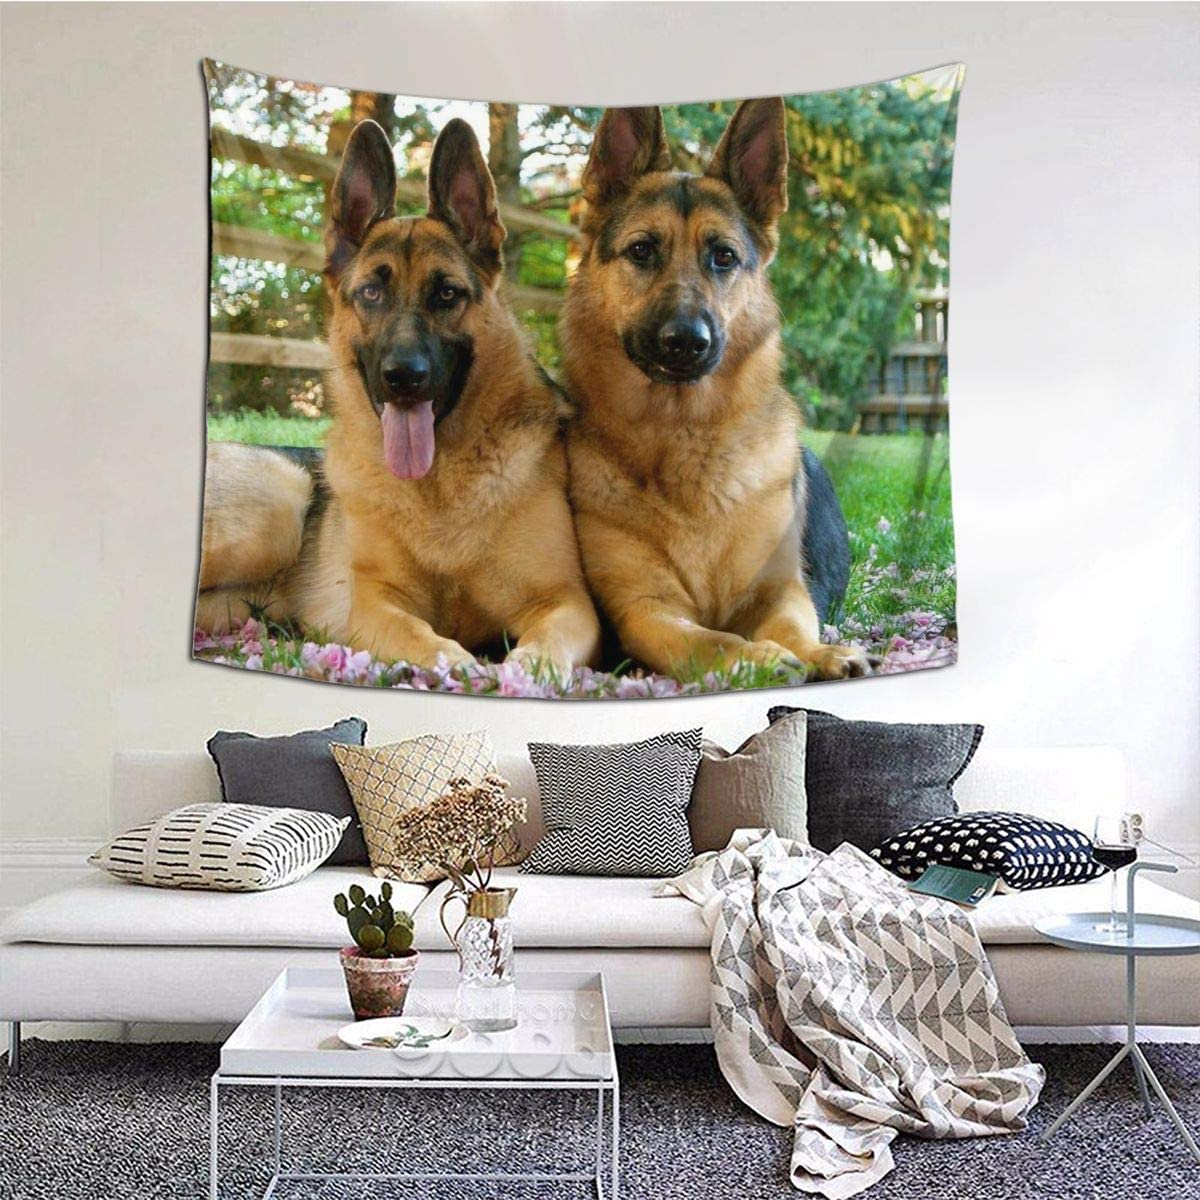 German Shepherd Dog Tapestry Wall Hanging, Art Decor Home Decoration for Living Room Bedroom Children's Room Apartment Dorm 60 X 51 Inches